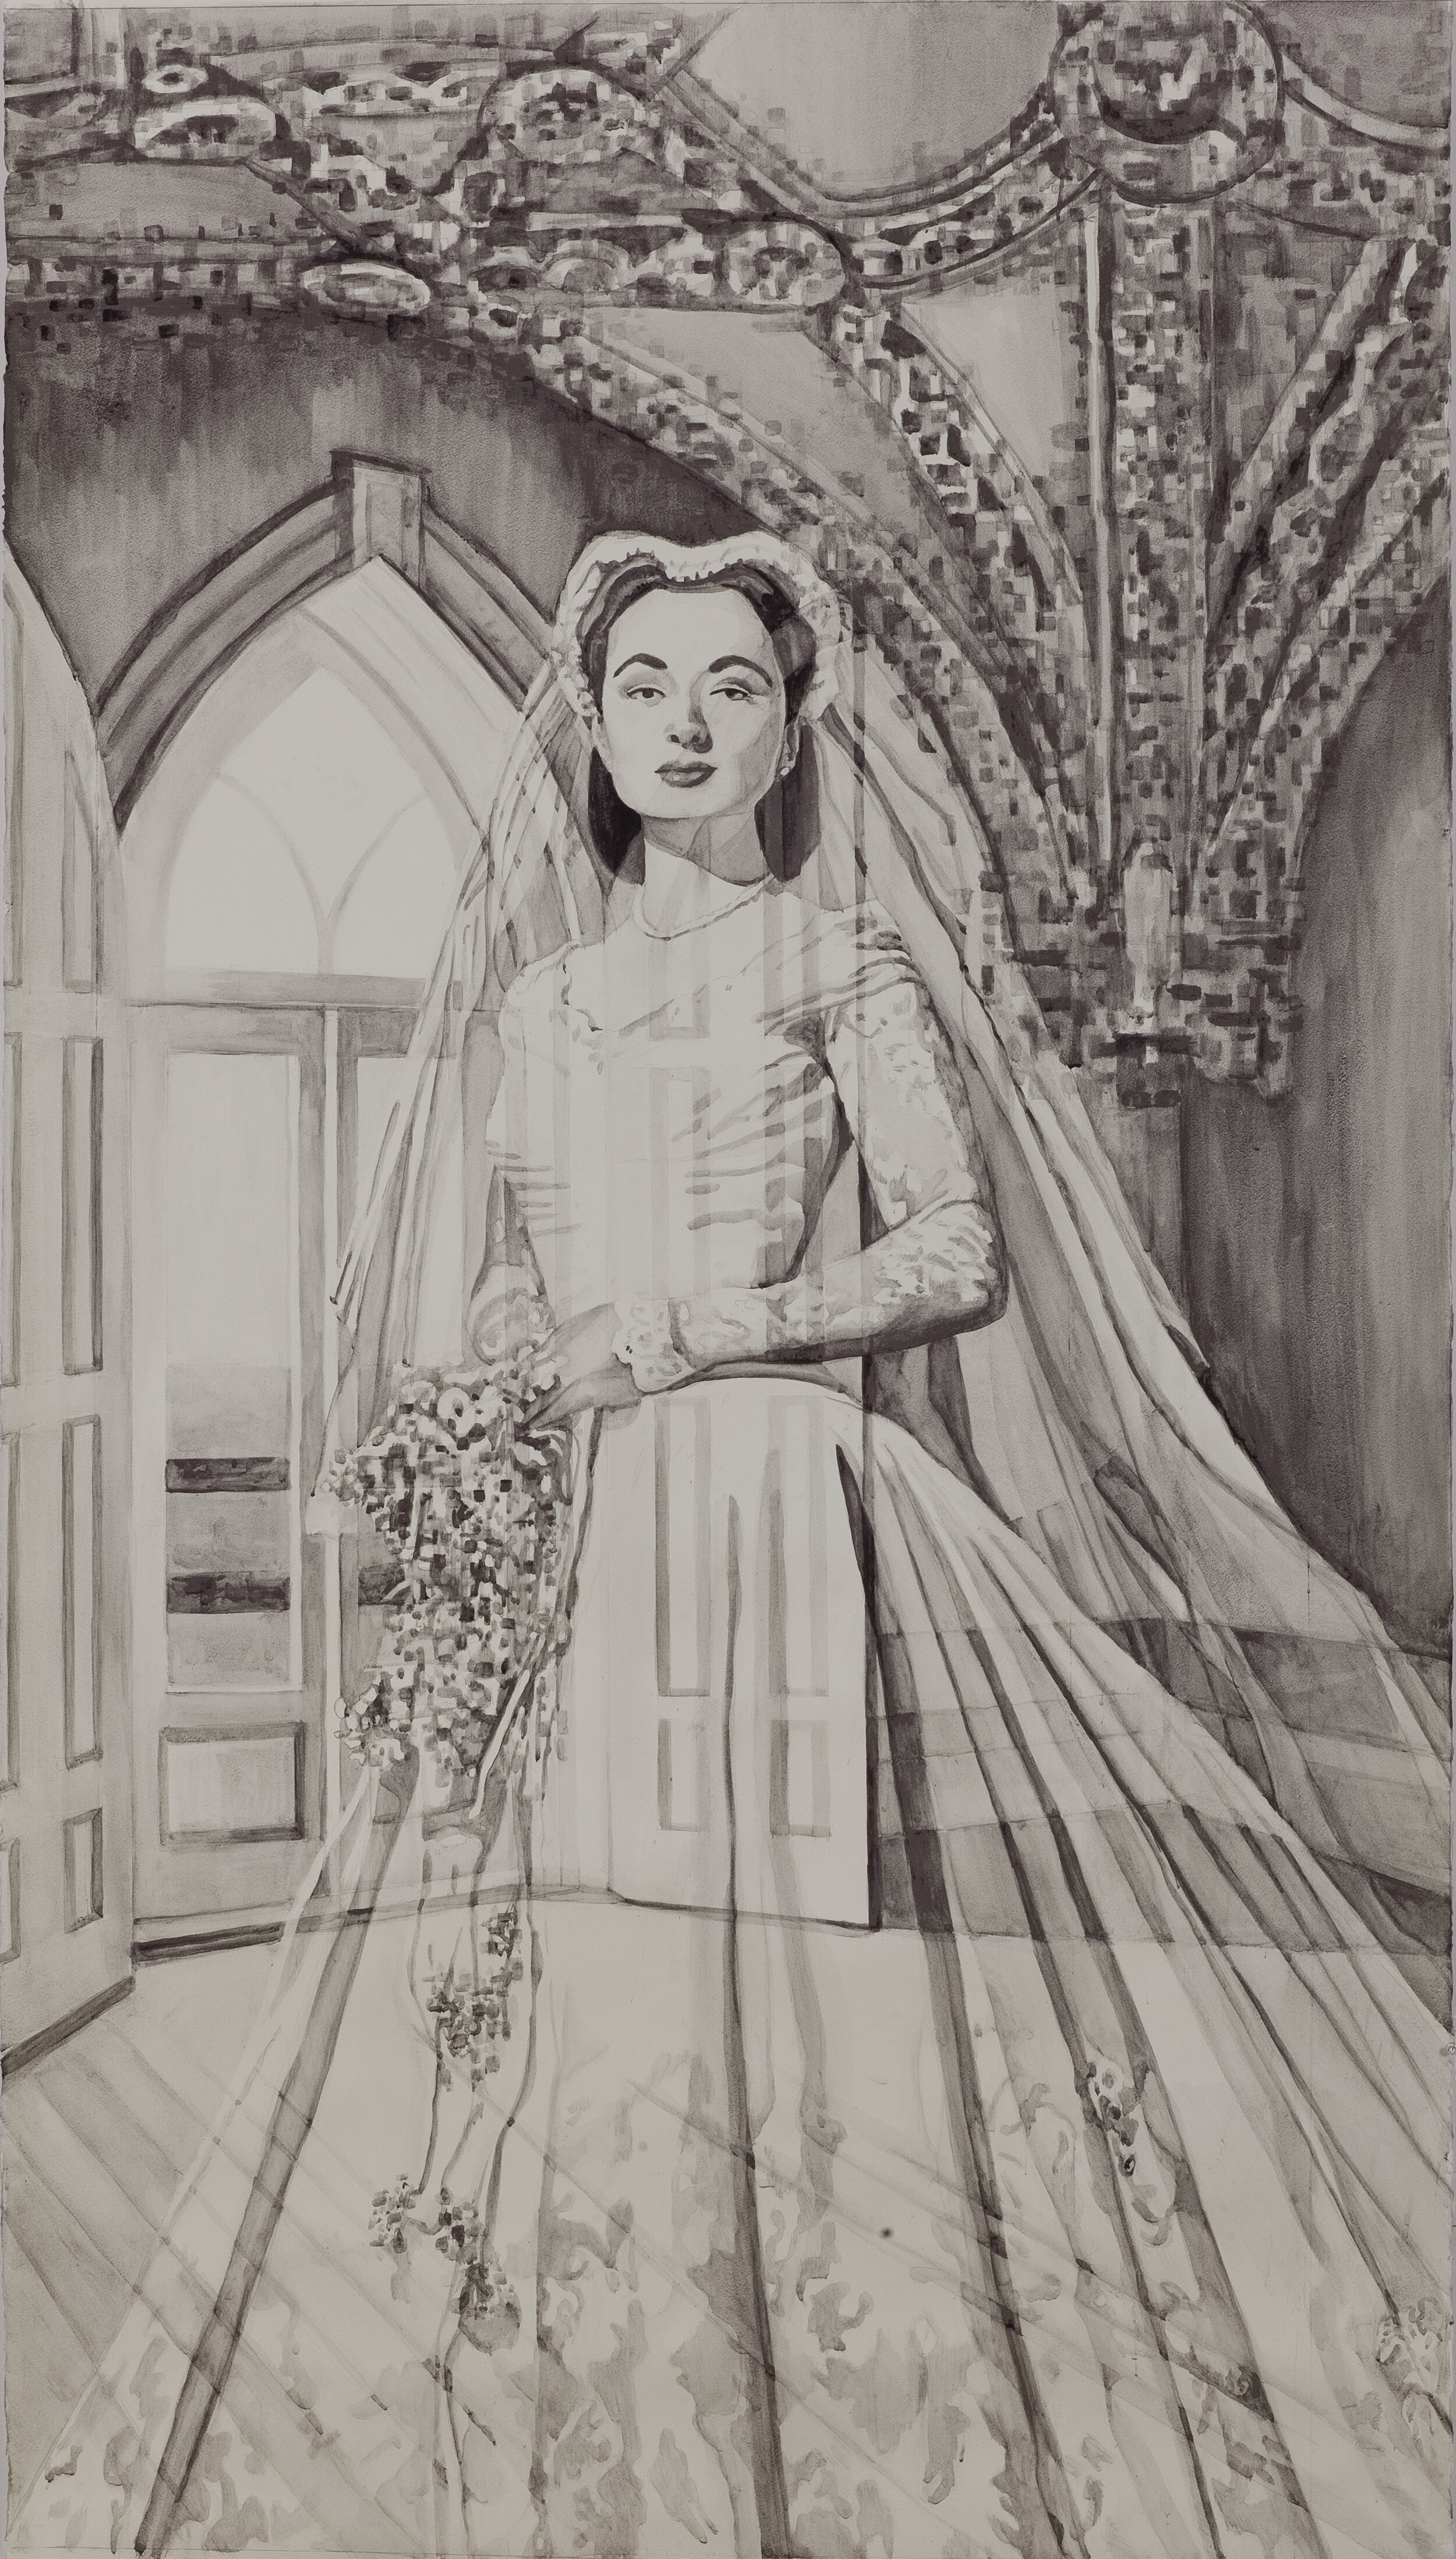 Fading Brides: Gothic Pixels, Wash drawing, 4x6, 2019